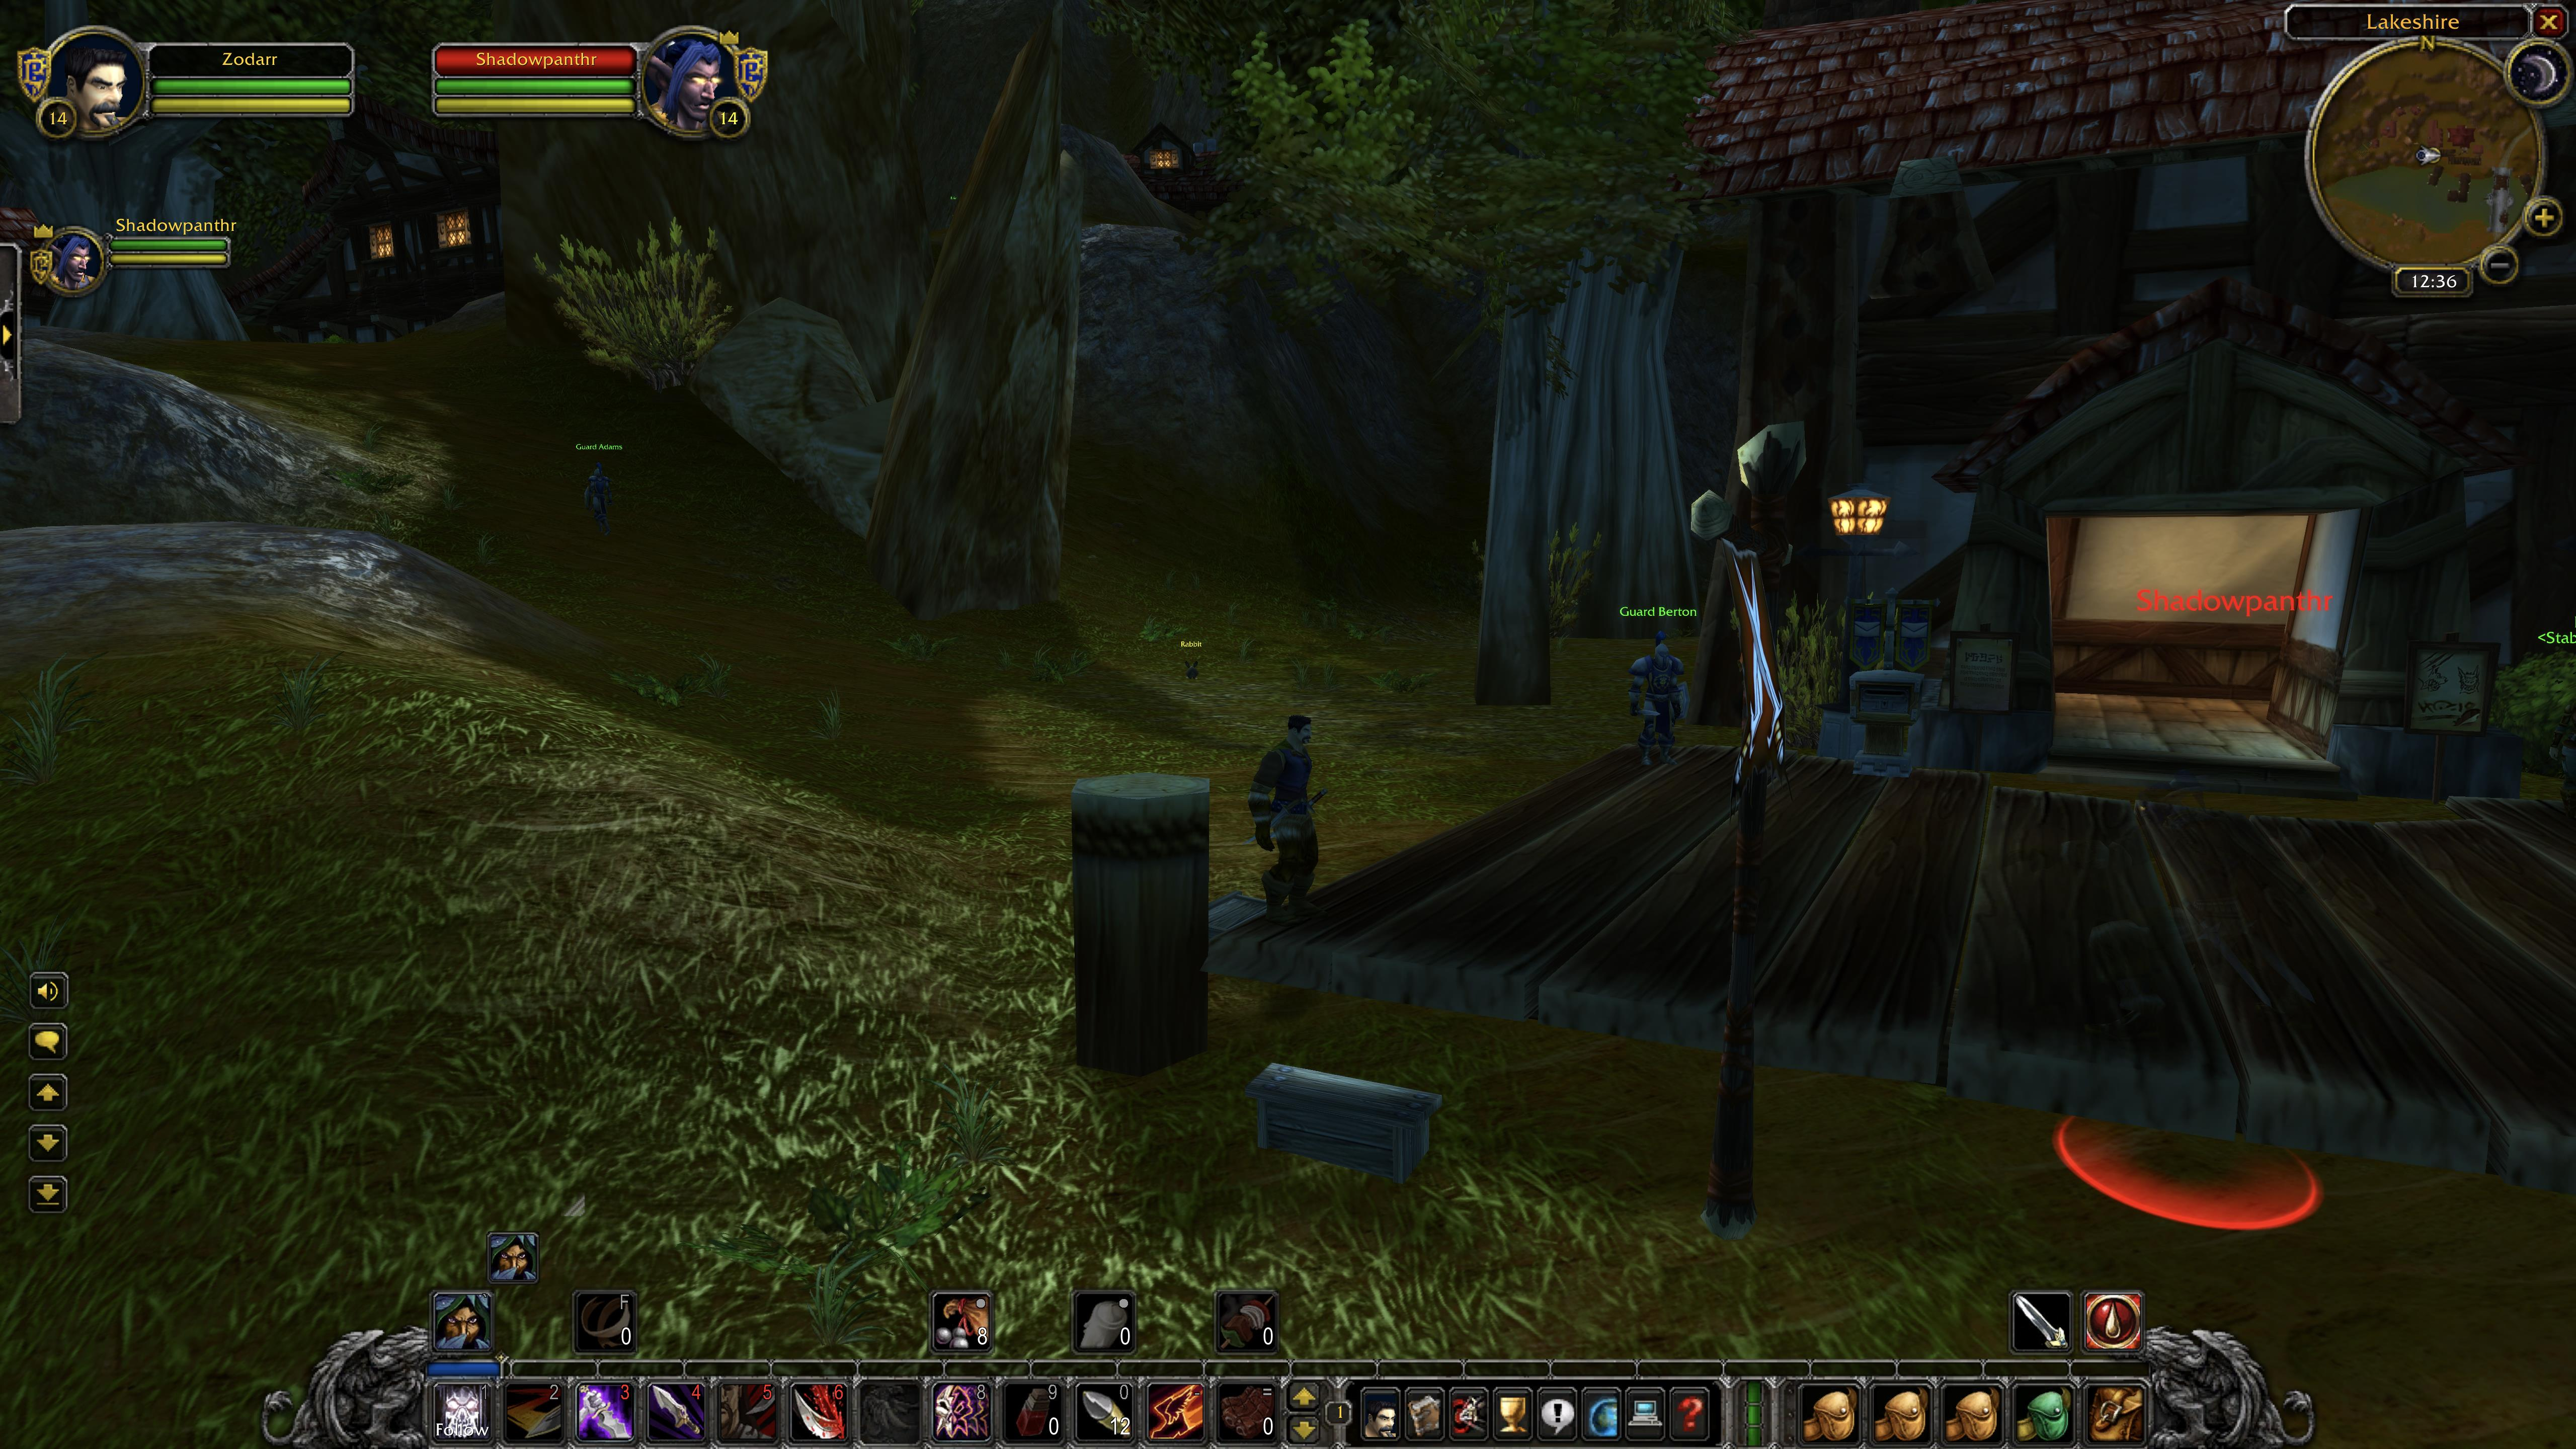 Night Elf Stealth - 0 MoD